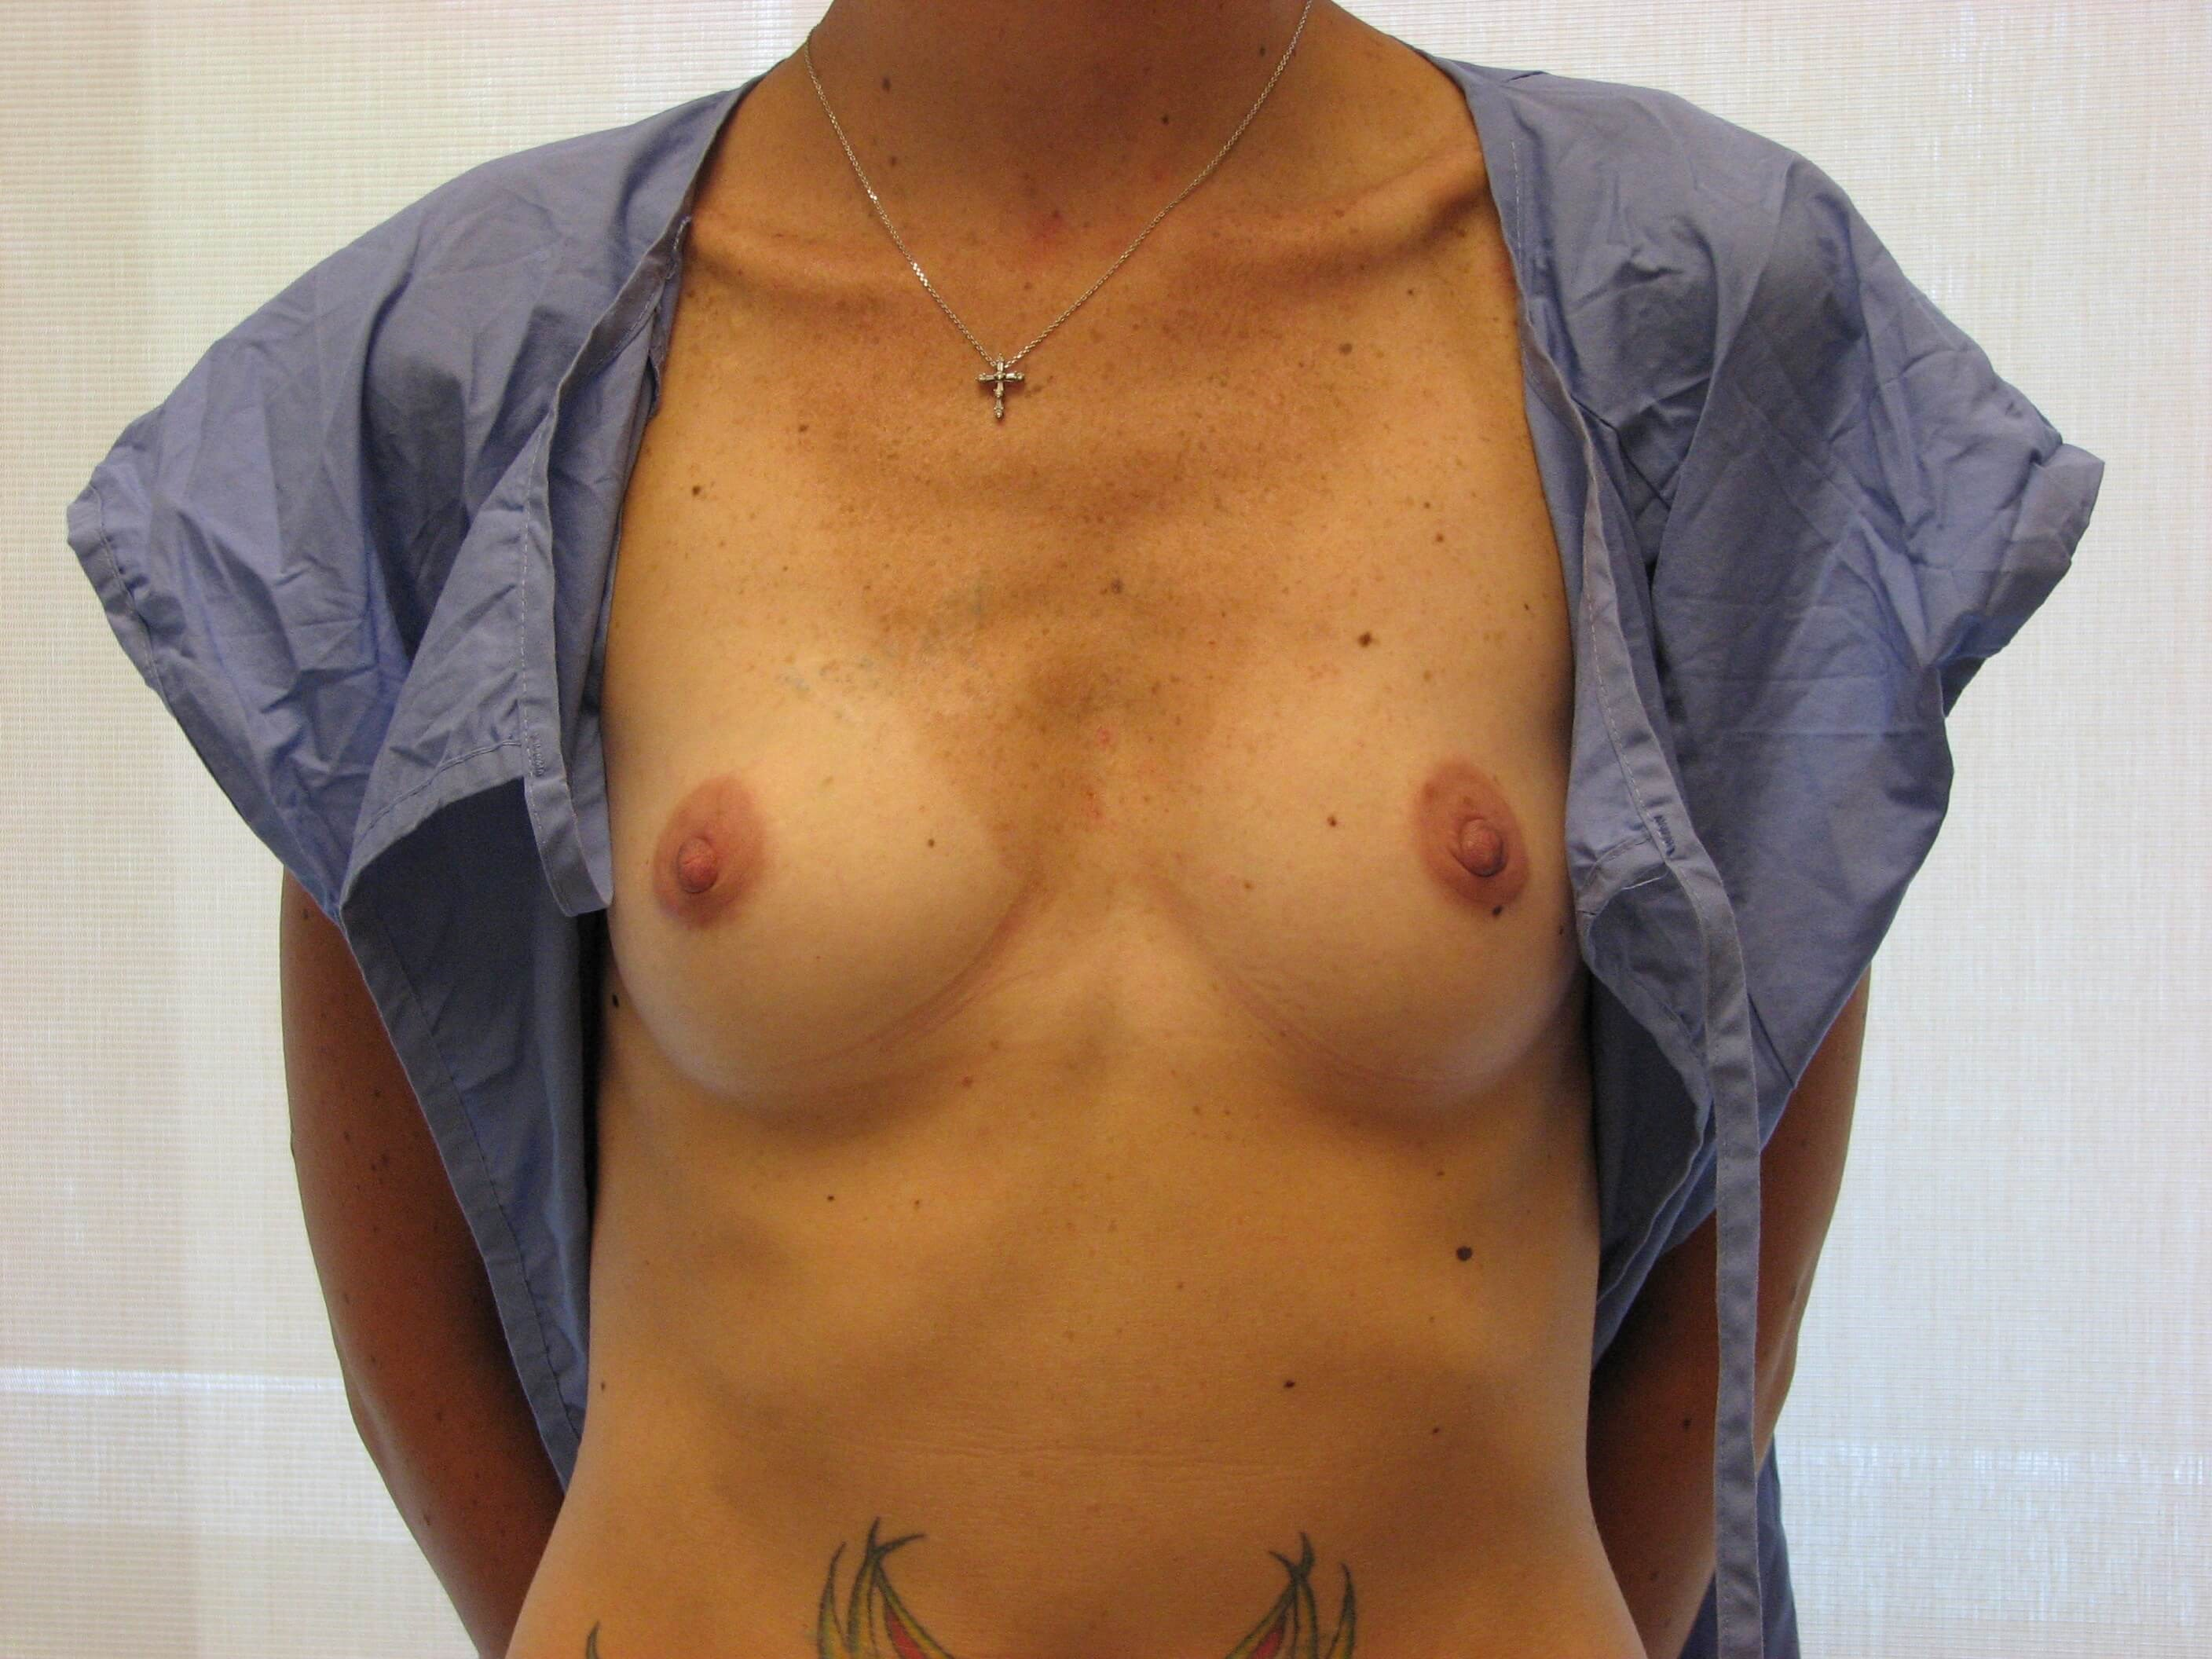 NY Breast Implant Surgery Before